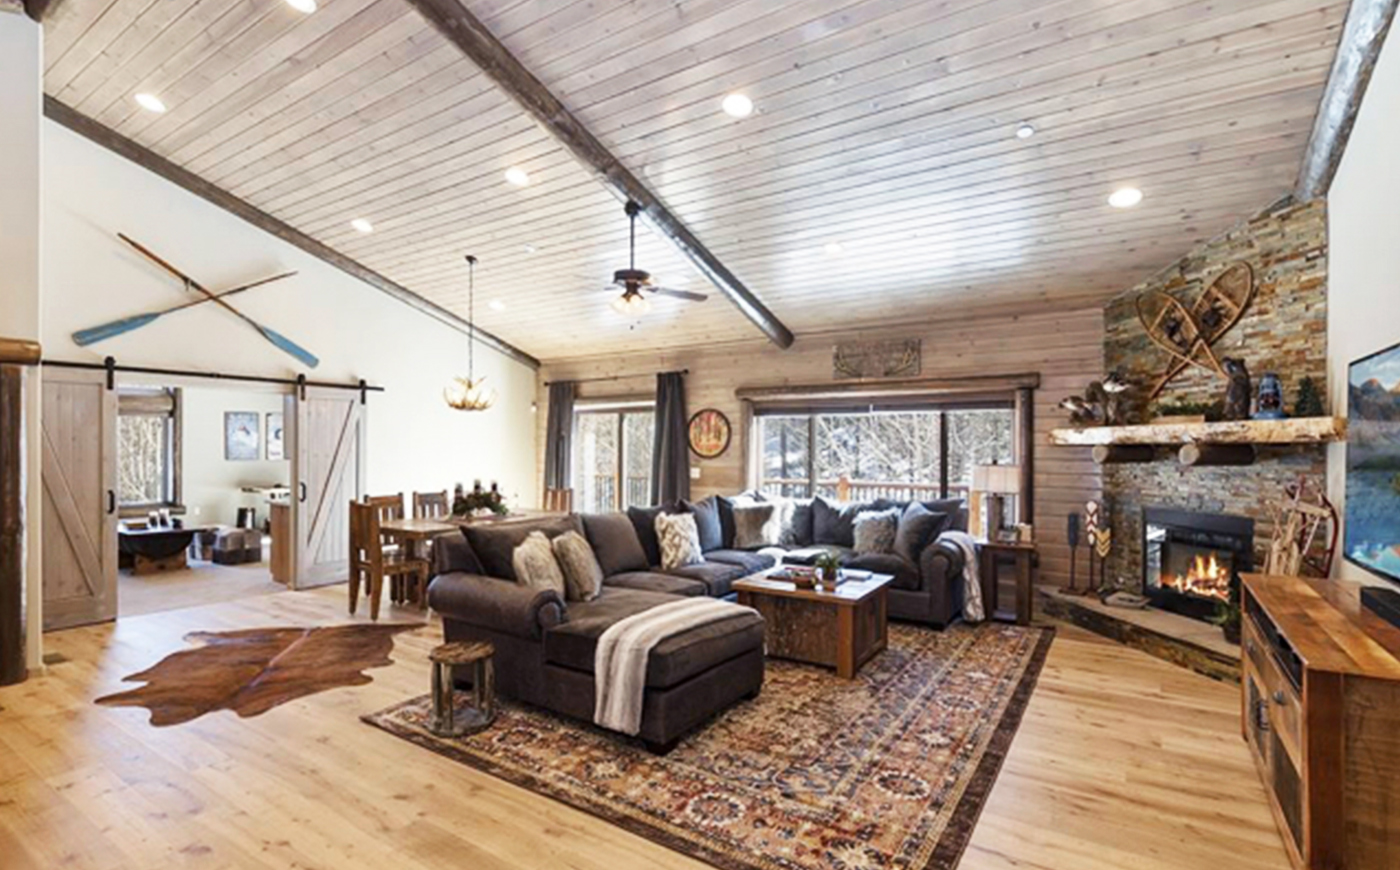 Stony Creek Road Vacation Home - Big Bear, CAView More